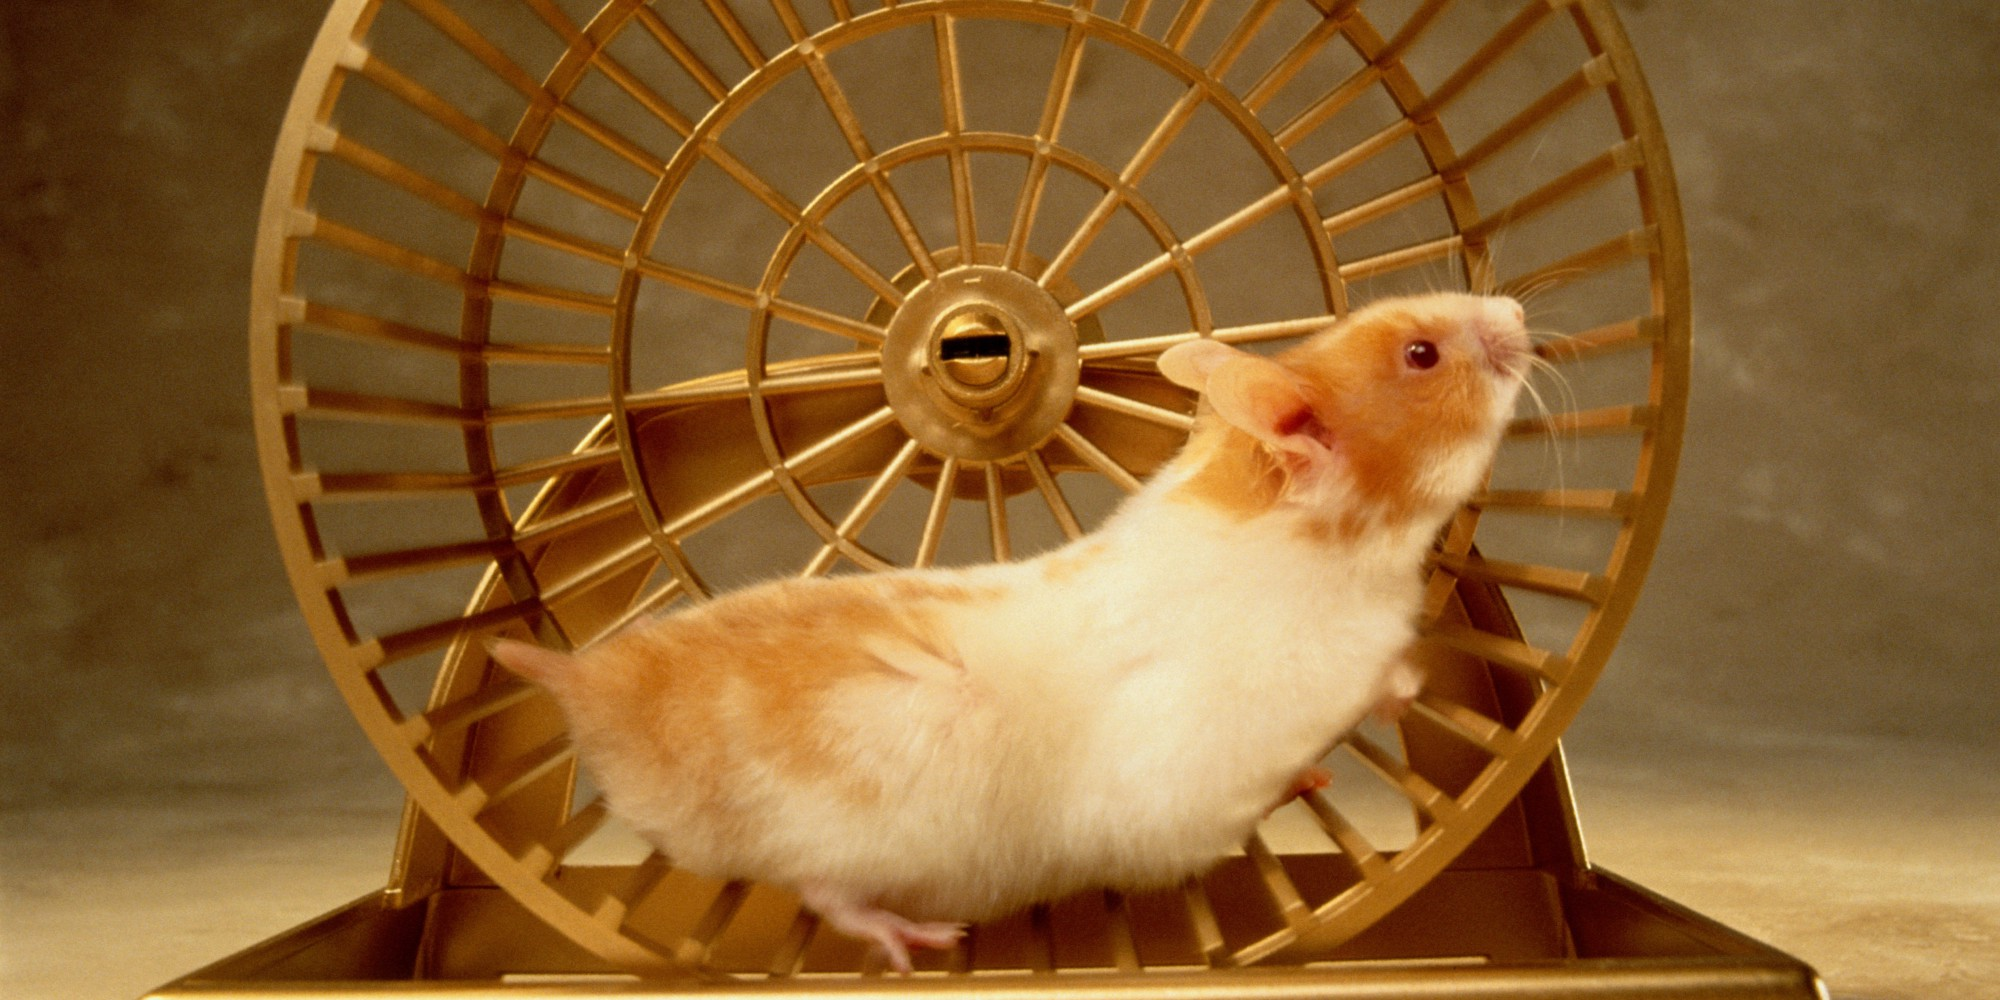 STEPPING OFF THE DEBT HAMSTER WHEEL